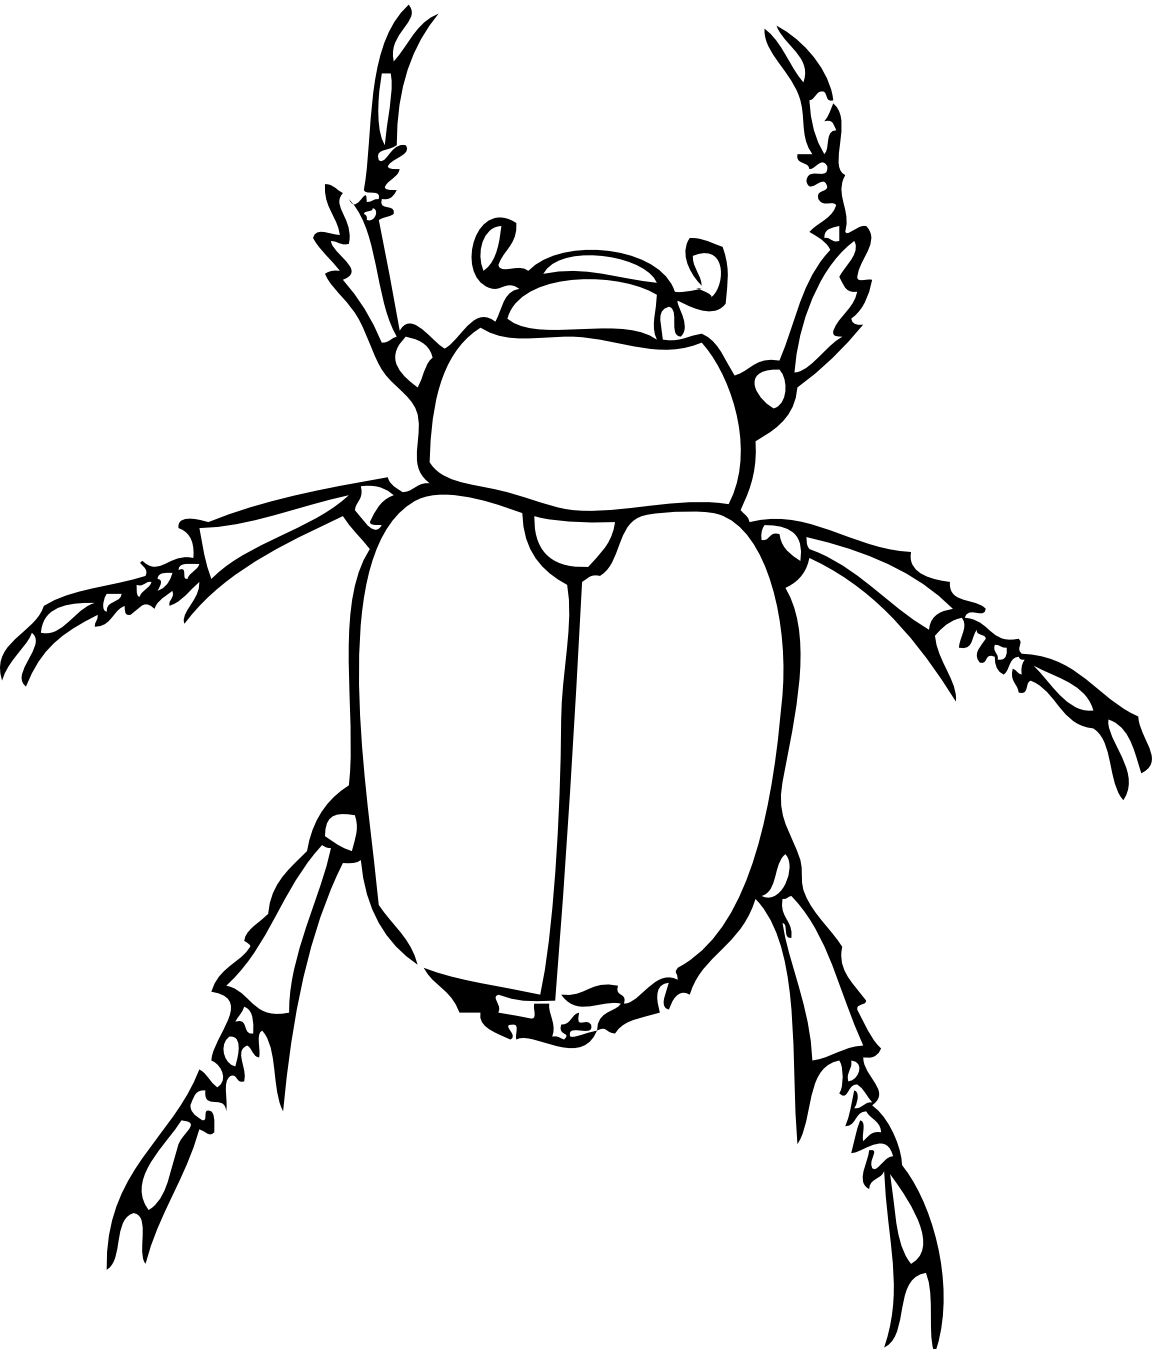 Drawing bugs. Bug line drawings printables